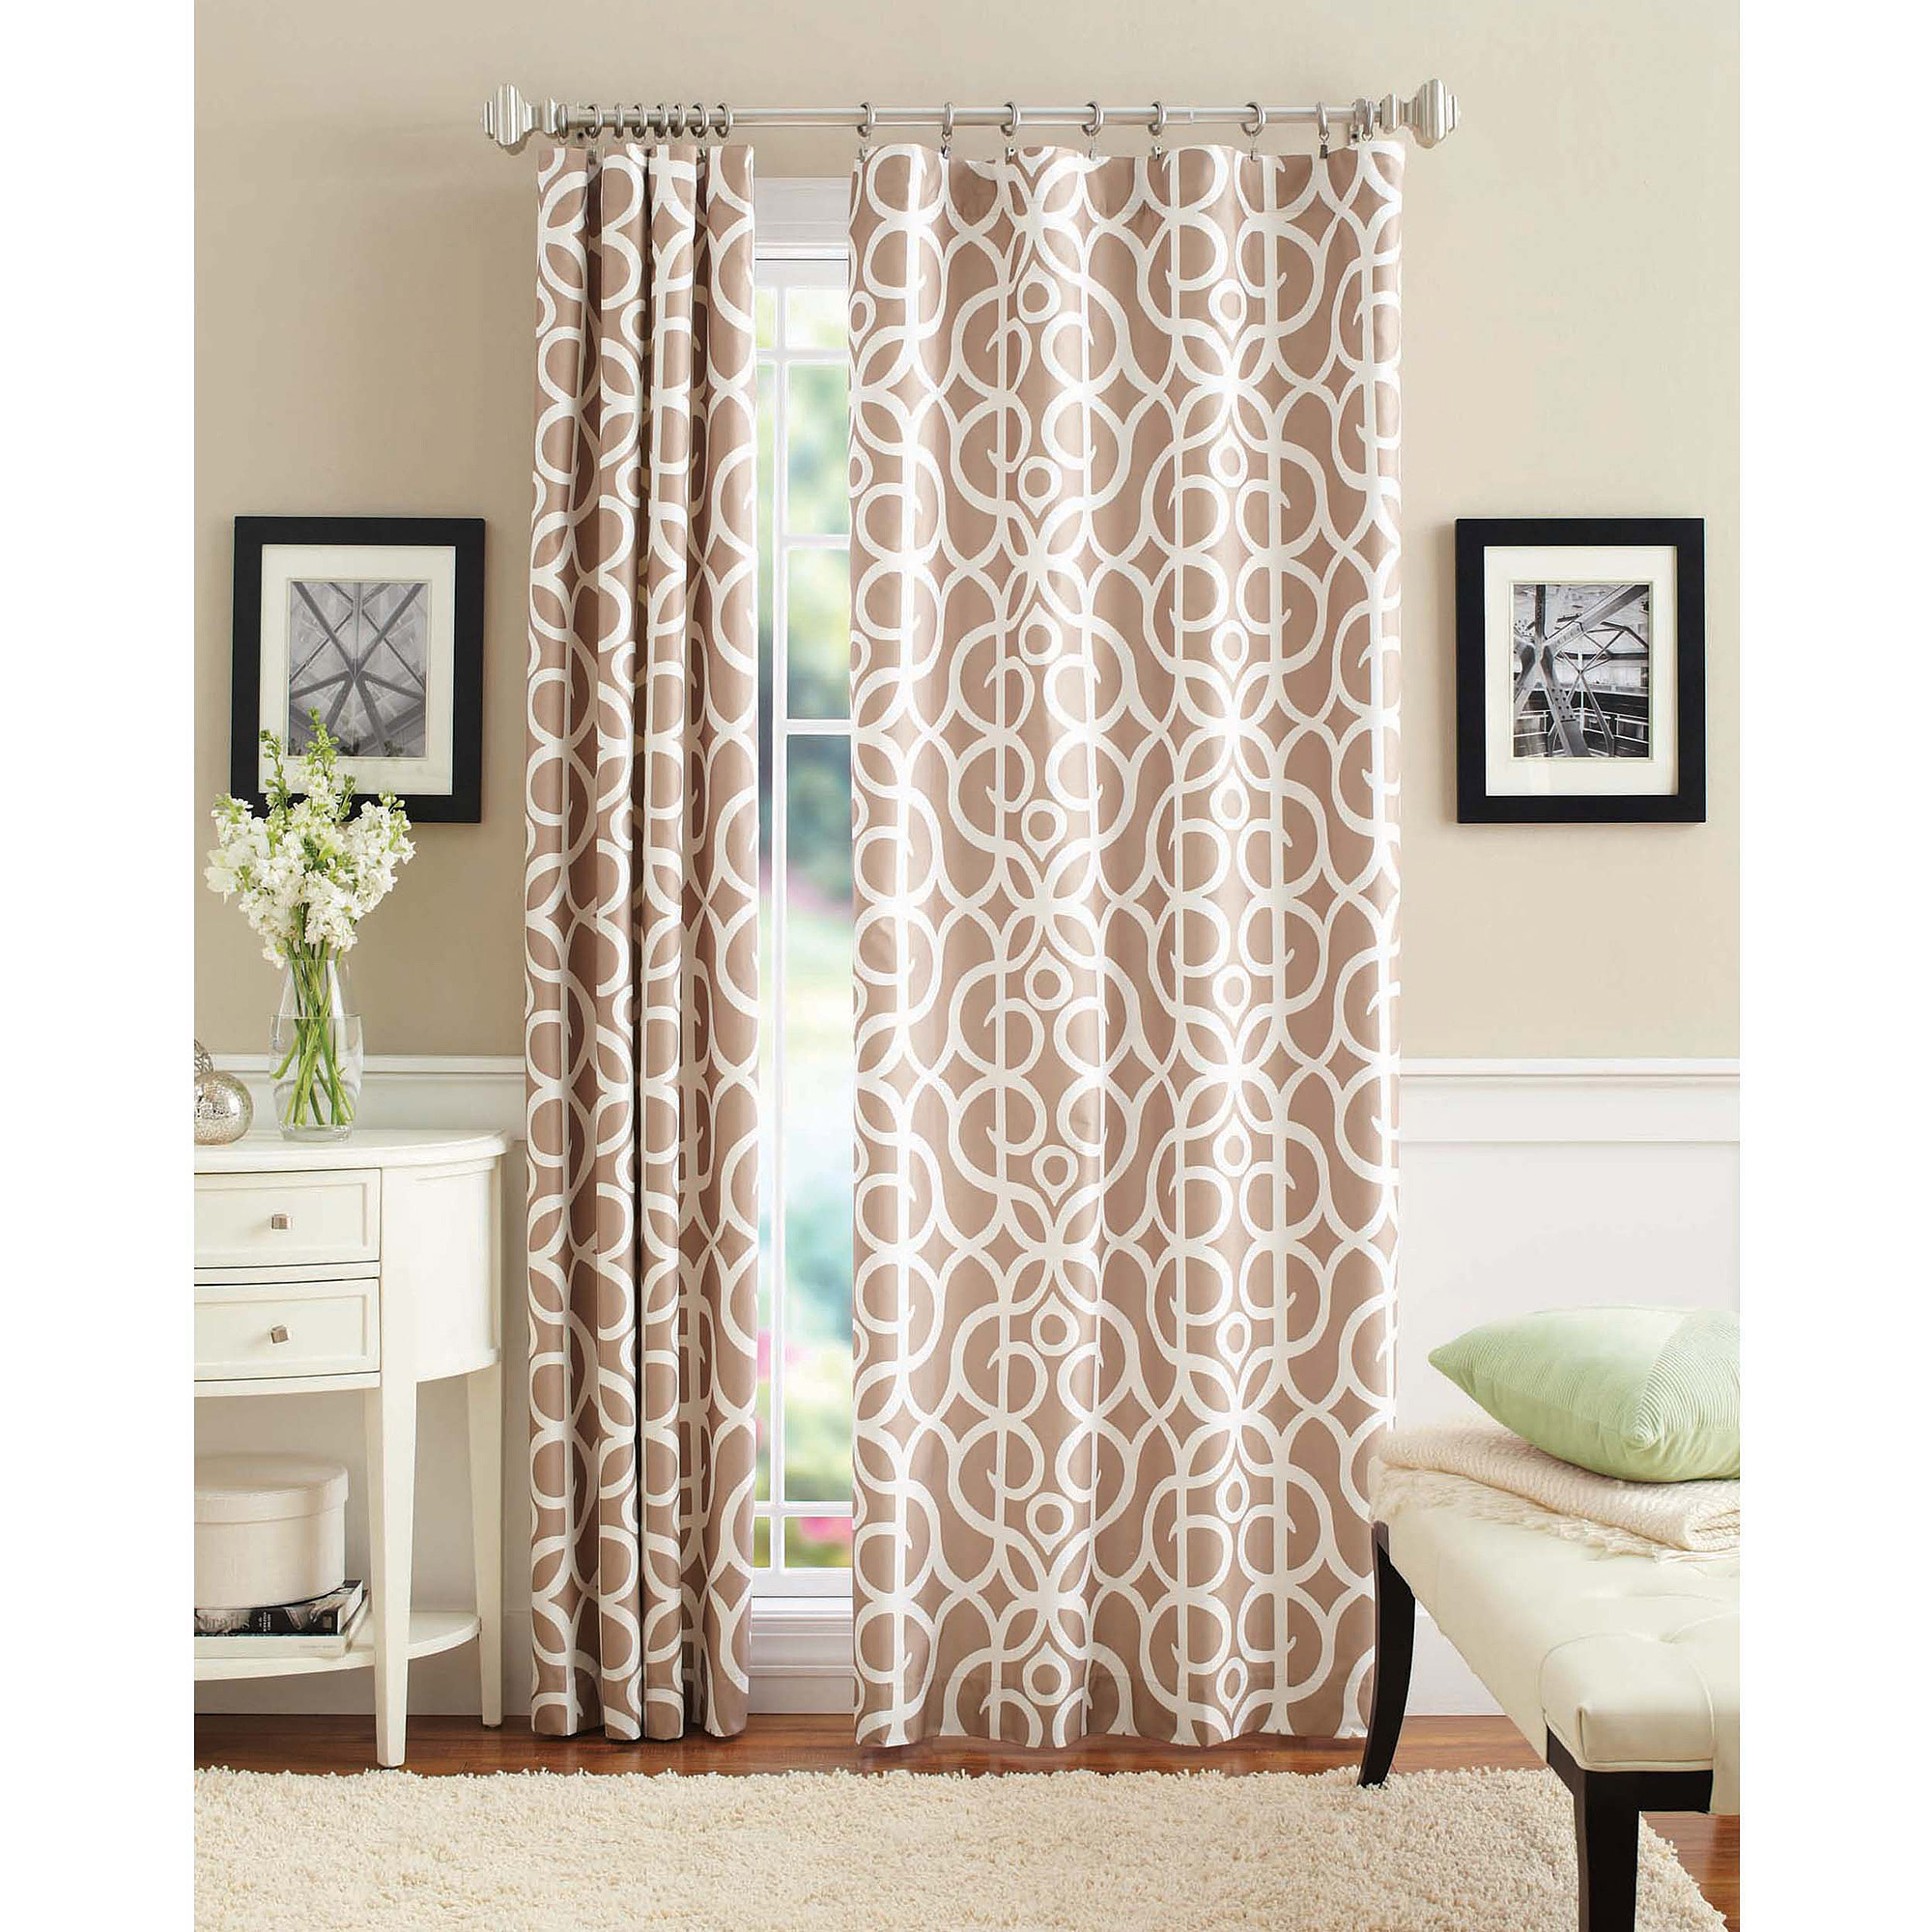 Better Homes and Gardens Marissa Curtain Panel  Walmartcom